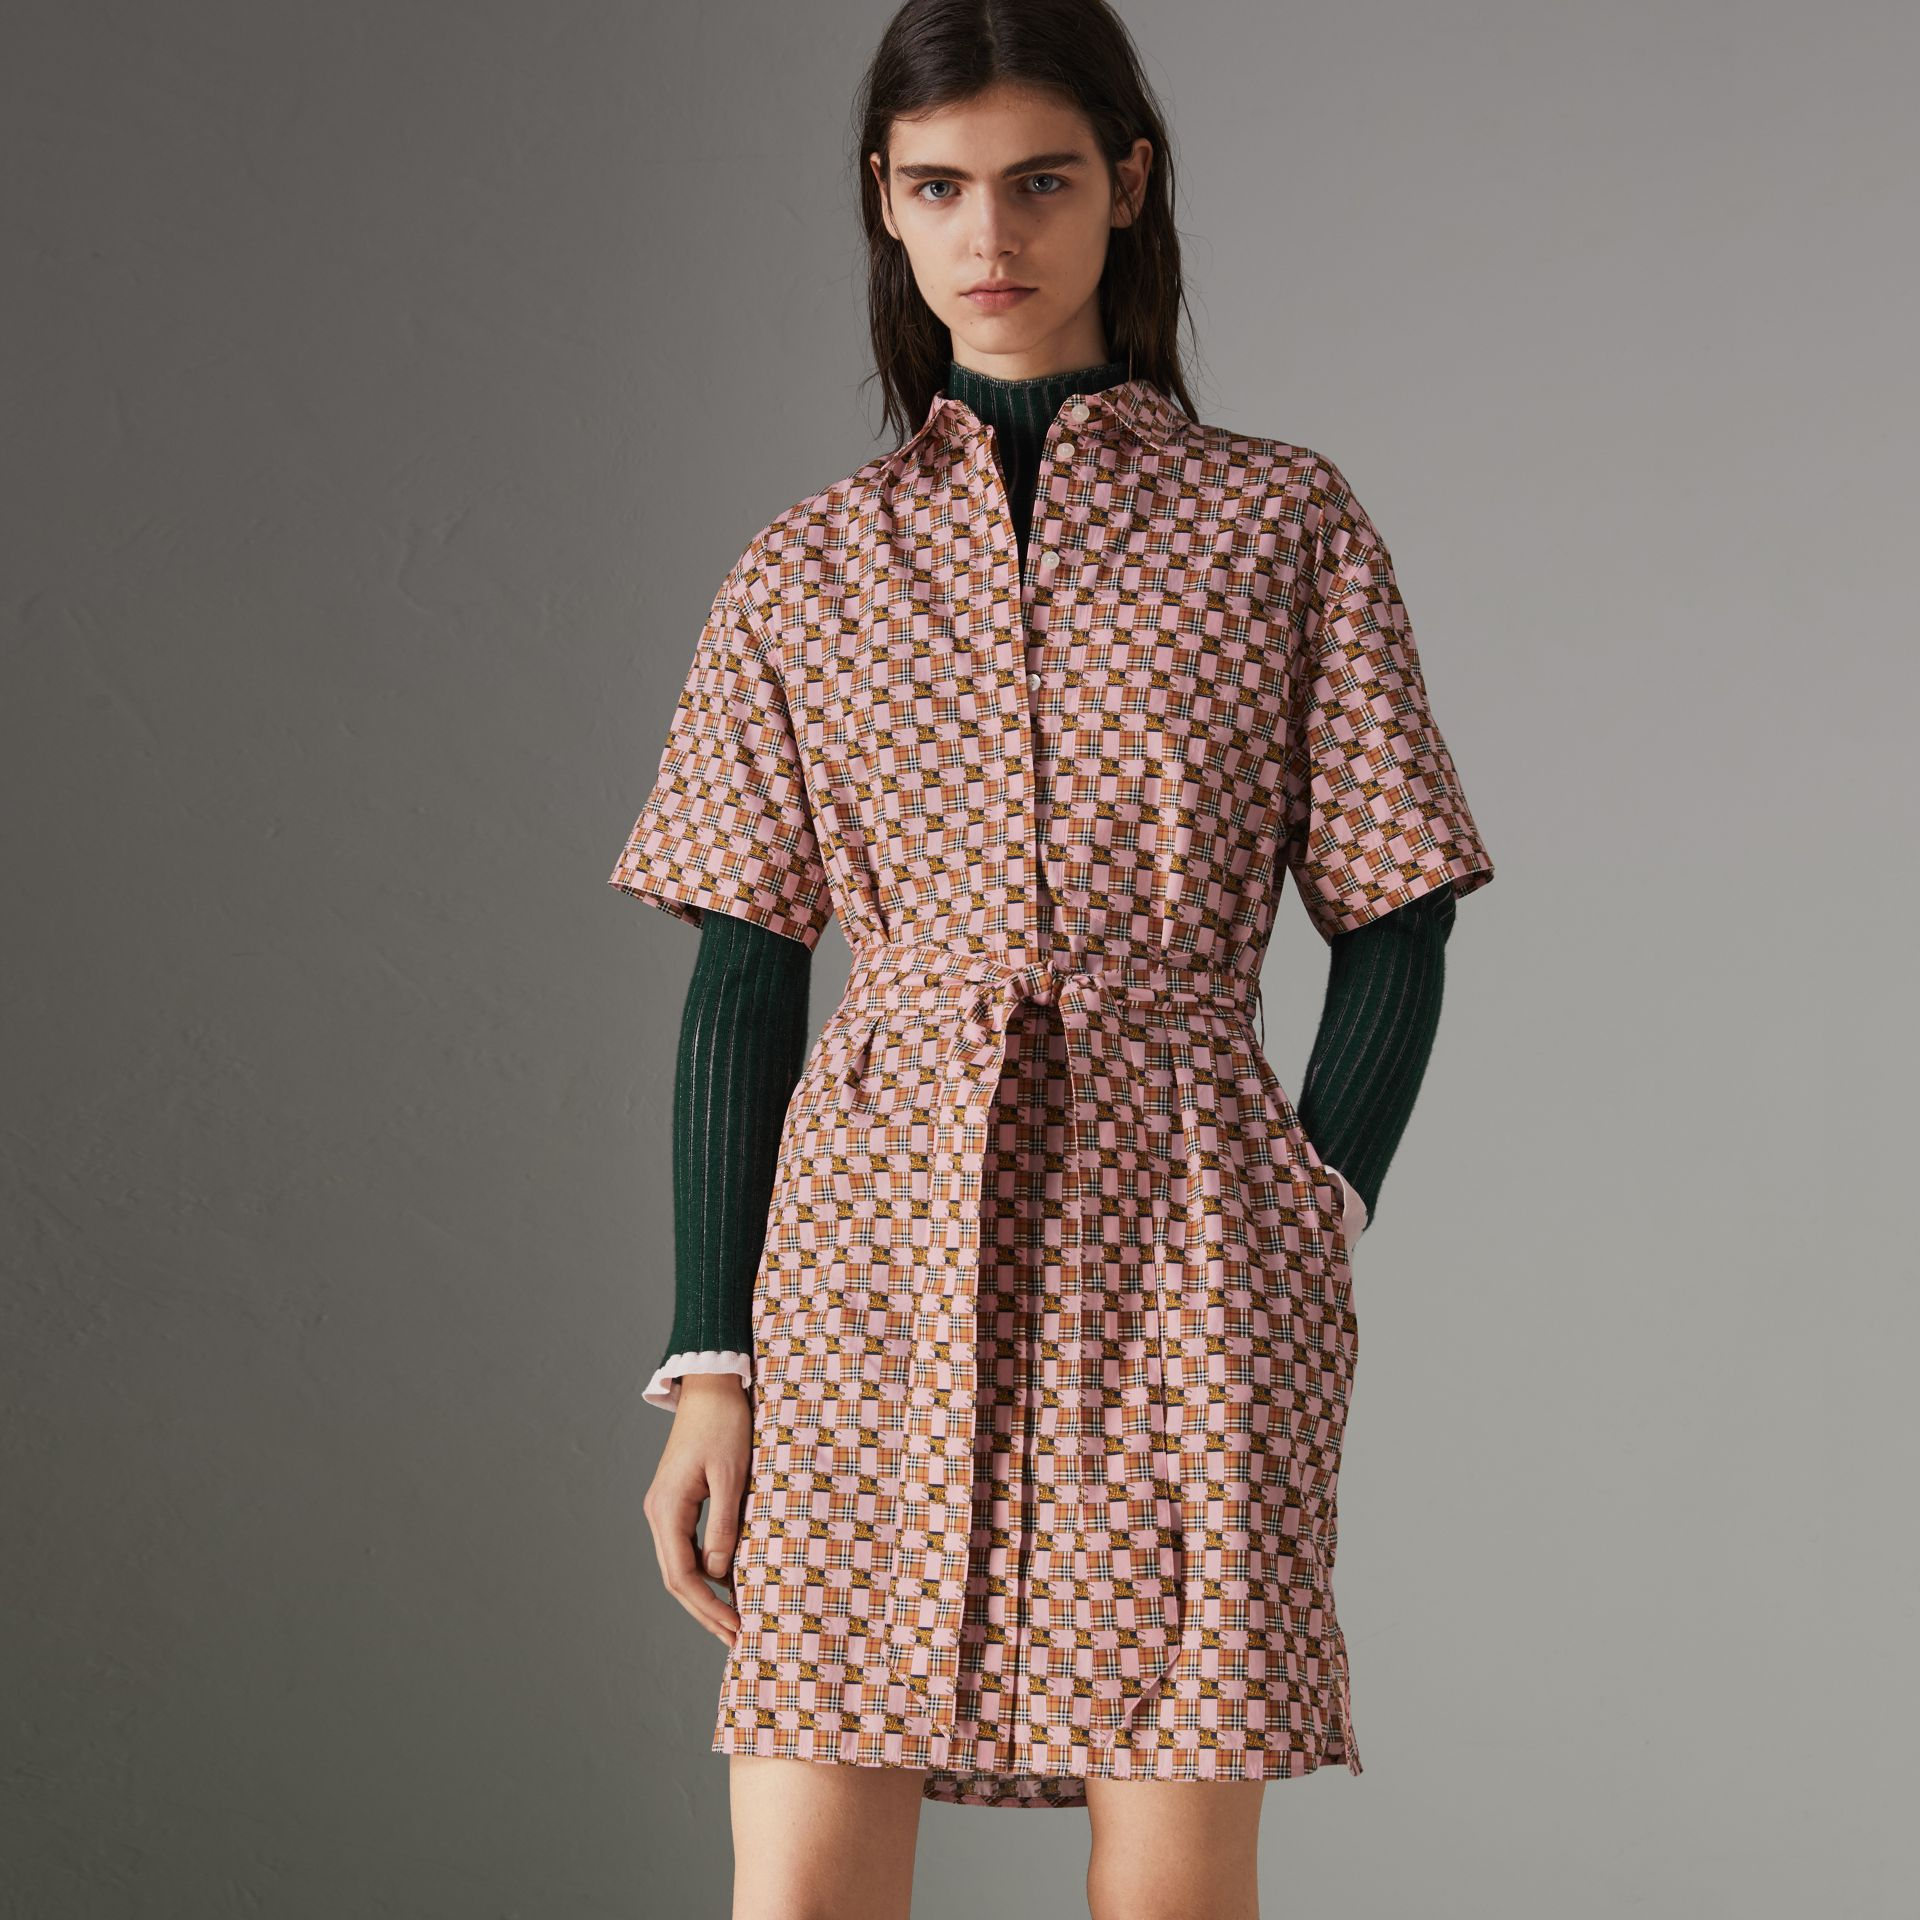 Tiled Archive Print Cotton Shirt Dress in Pink - Women | Burberry - gallery image 0